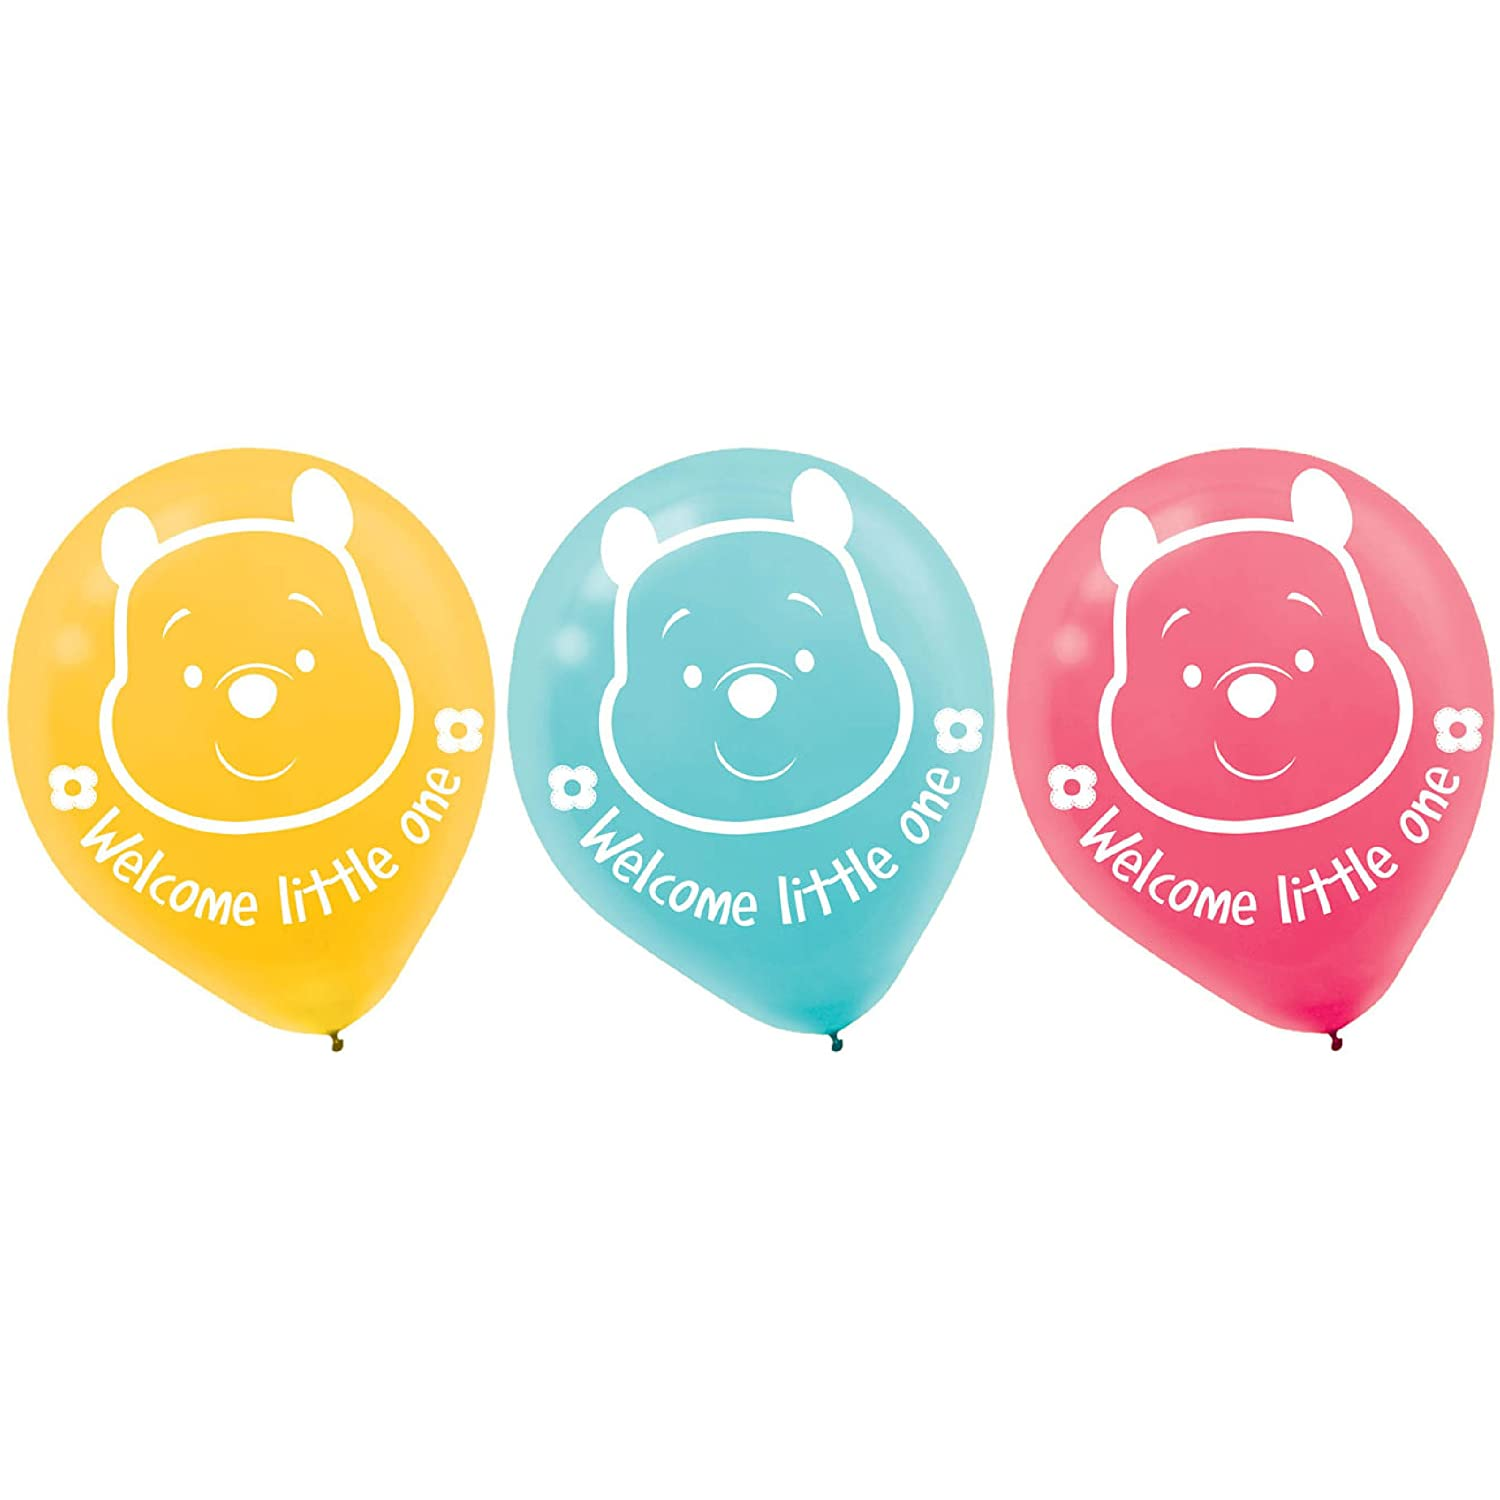 Winnie the Pooh 'Little Hunny' Baby Shower Latex Balloons (15ct)